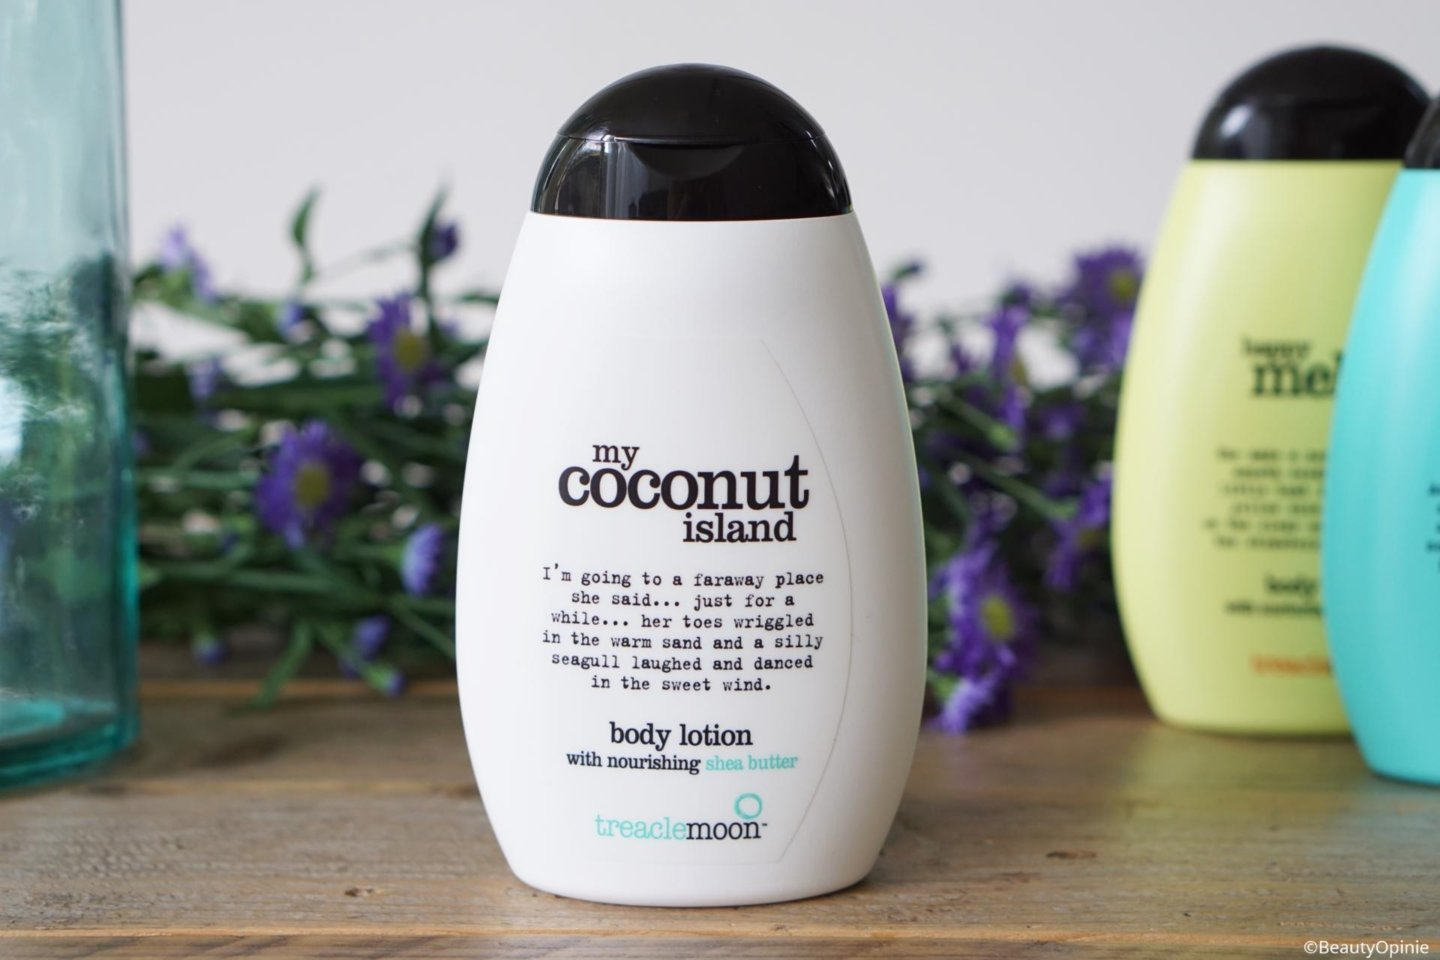 Review Treaclemoon 'My Coconut Island' Body Lotion